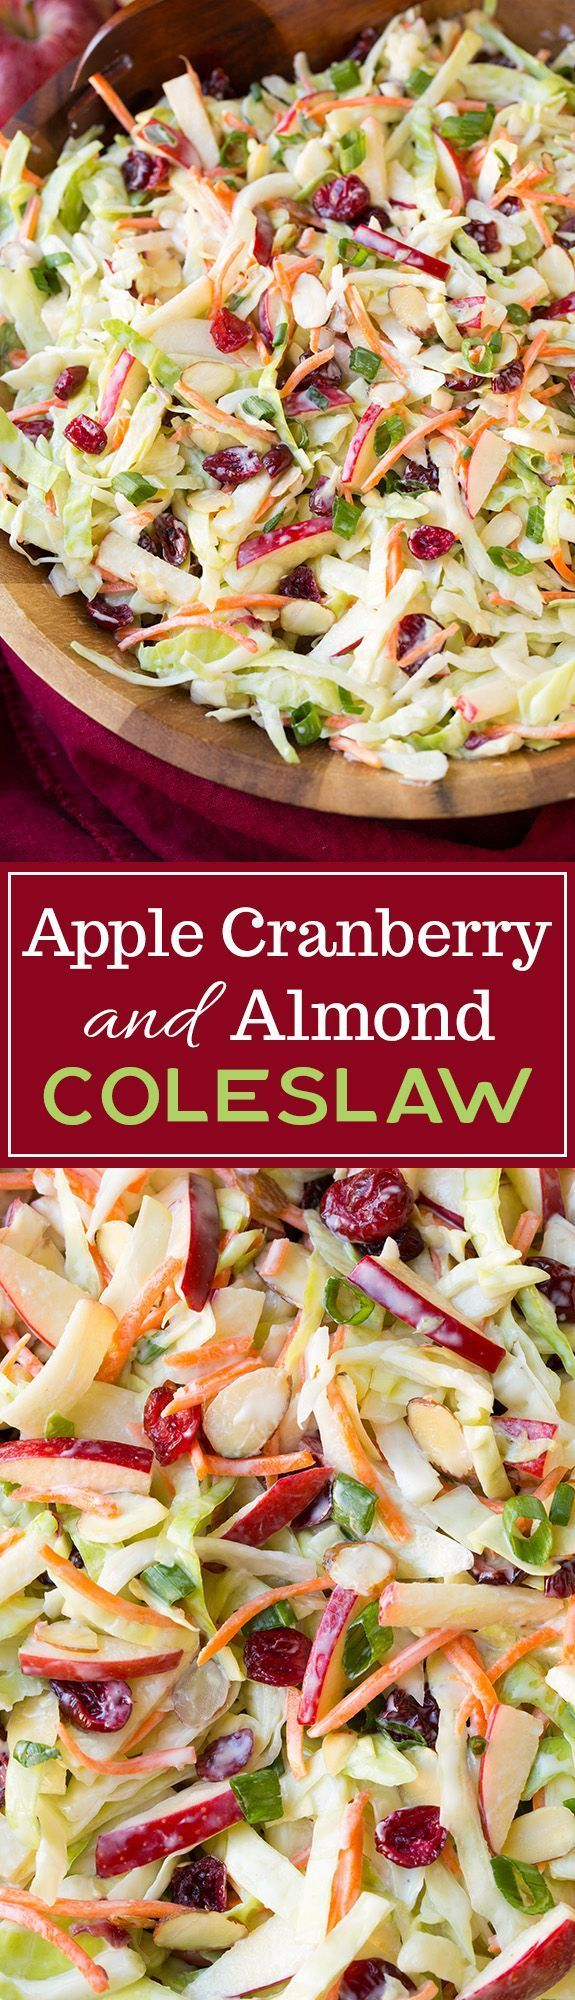 Apple Cranberry Almond Coleslaw - love that it uses mostly Greek yogurt instead of mayo! Easy, healthy, and delicious!